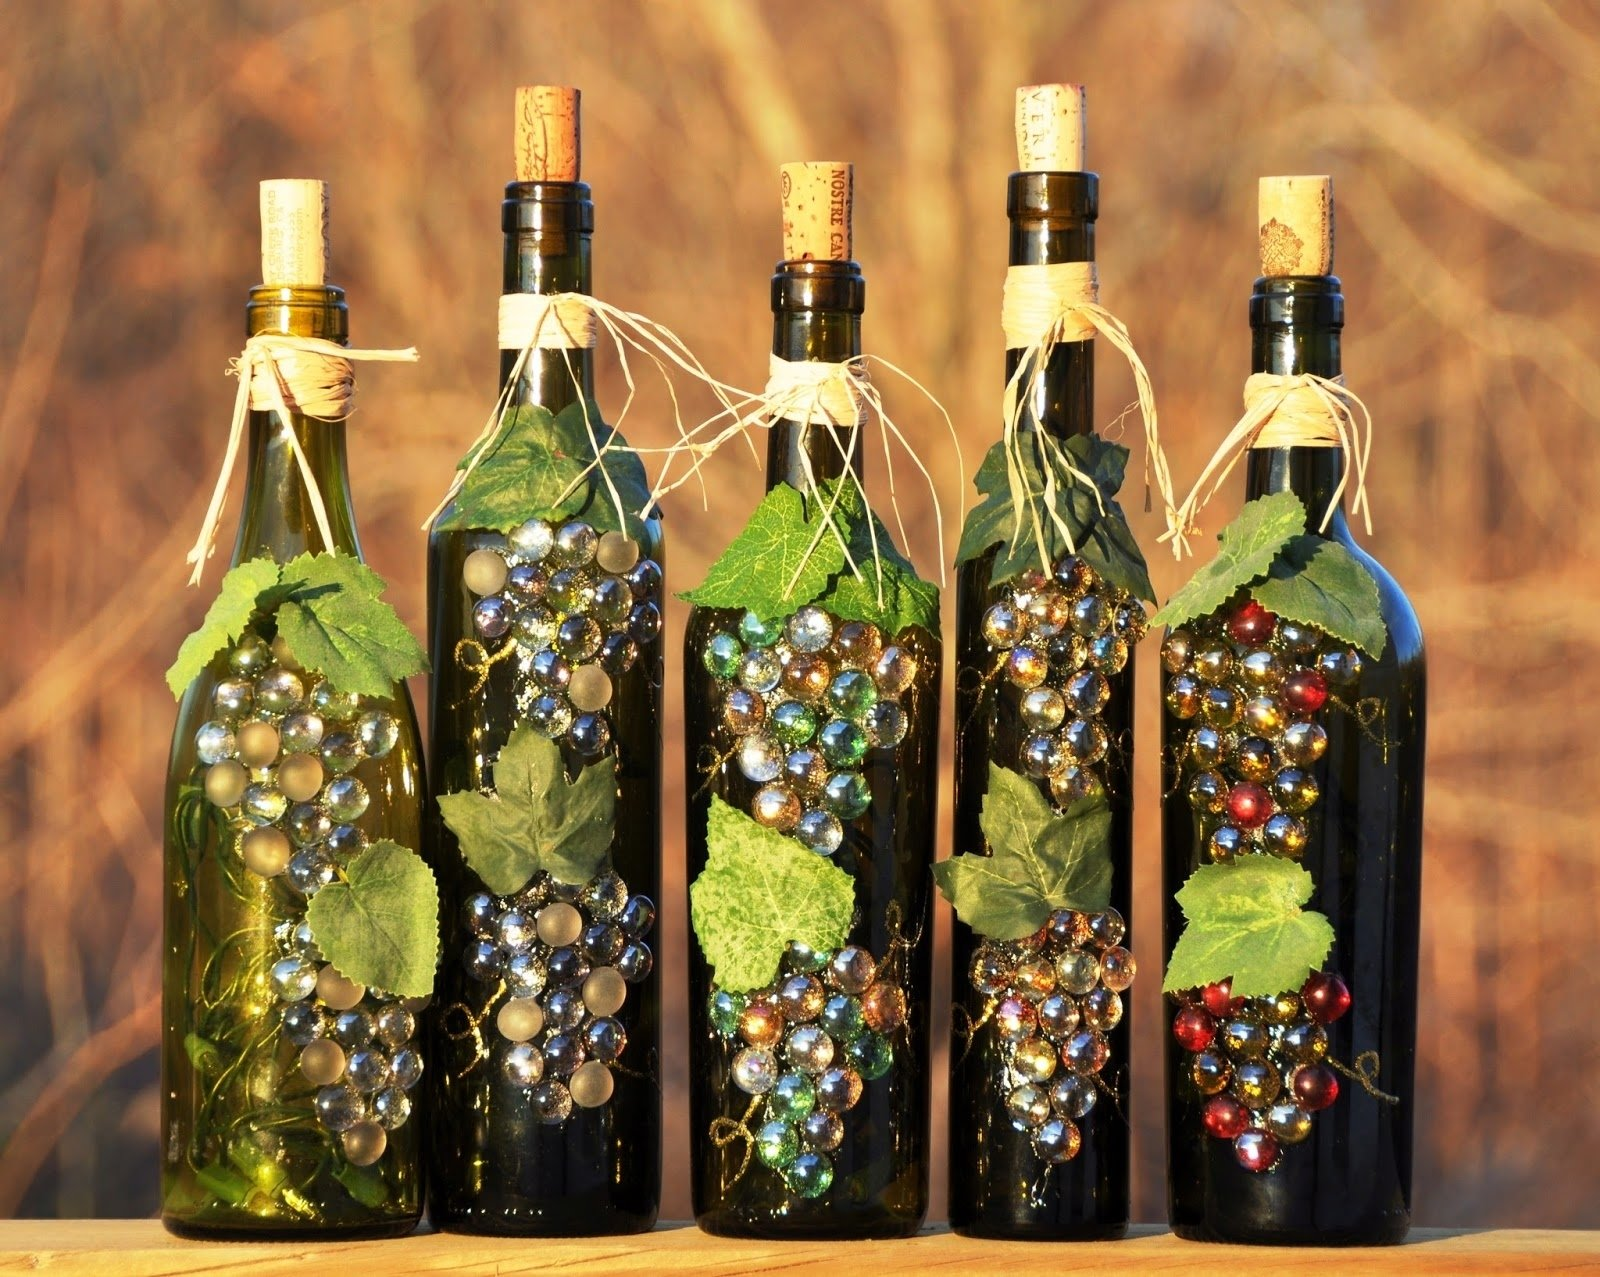 10 Most Popular Craft Ideas For Wine Bottles wine bottle recycle craft project art craft gift ideas 1 2020